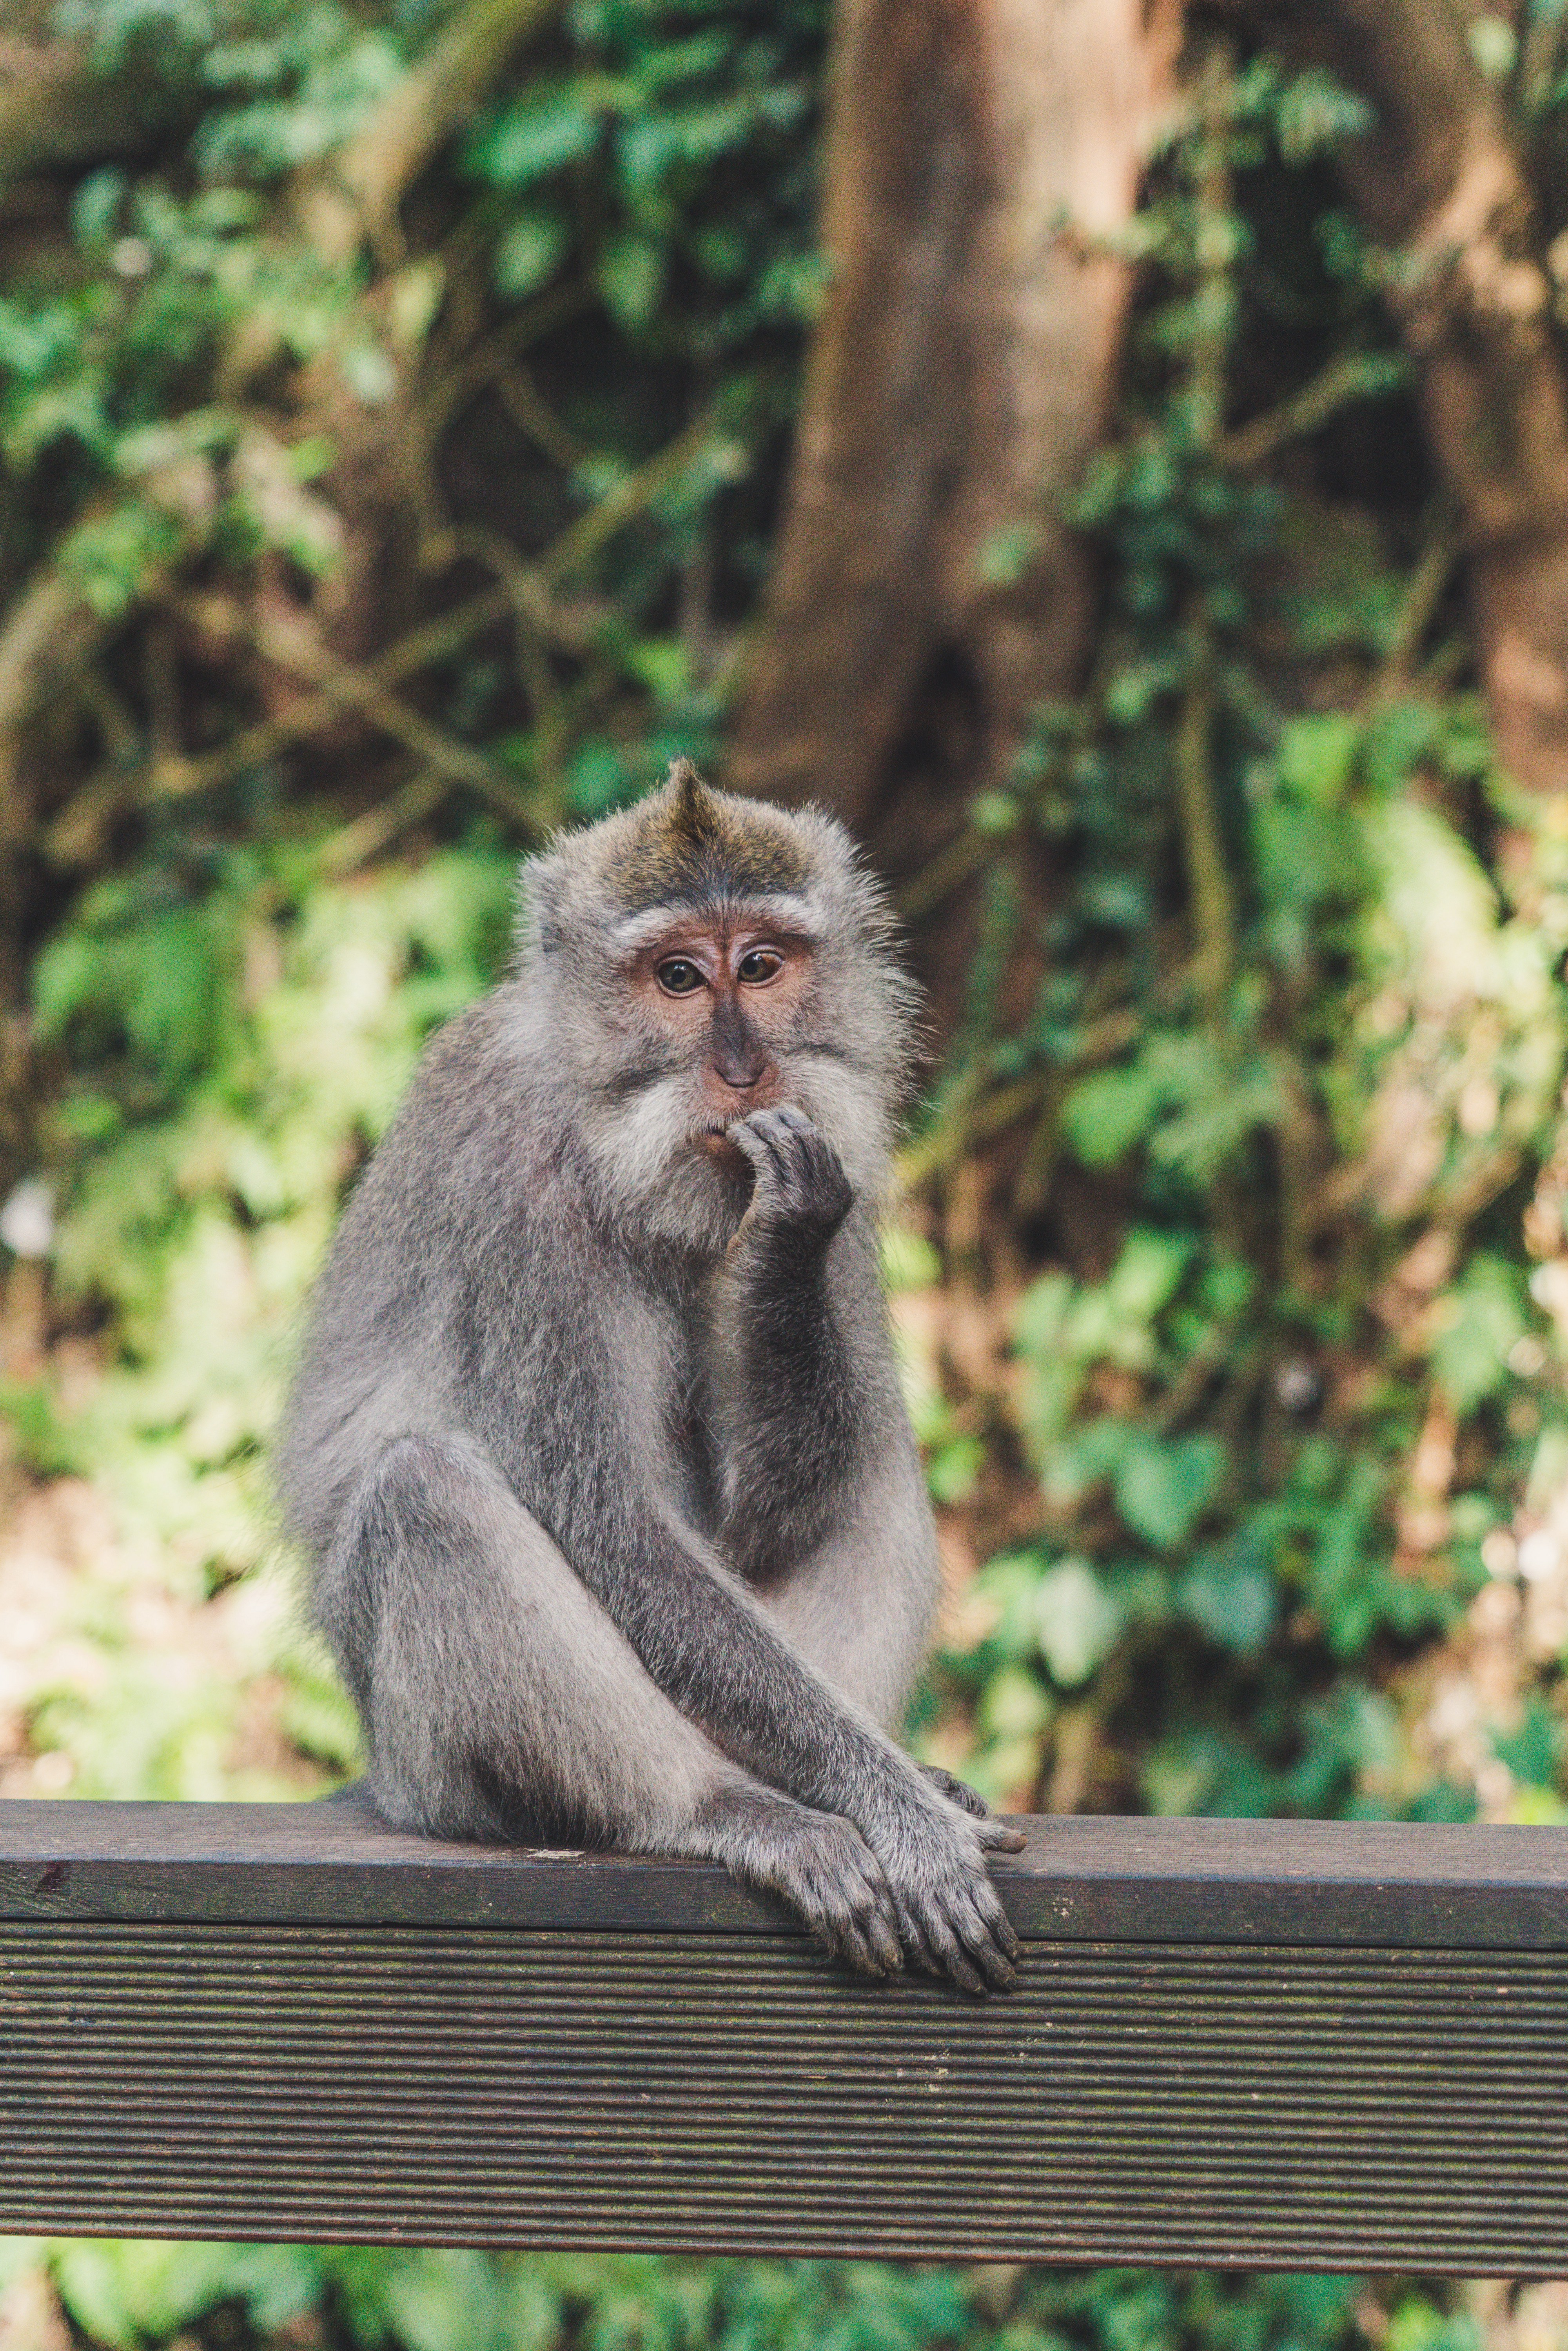 Macaque with contemplative expression in Bali's Ubud Monkey Forest Sanctuary